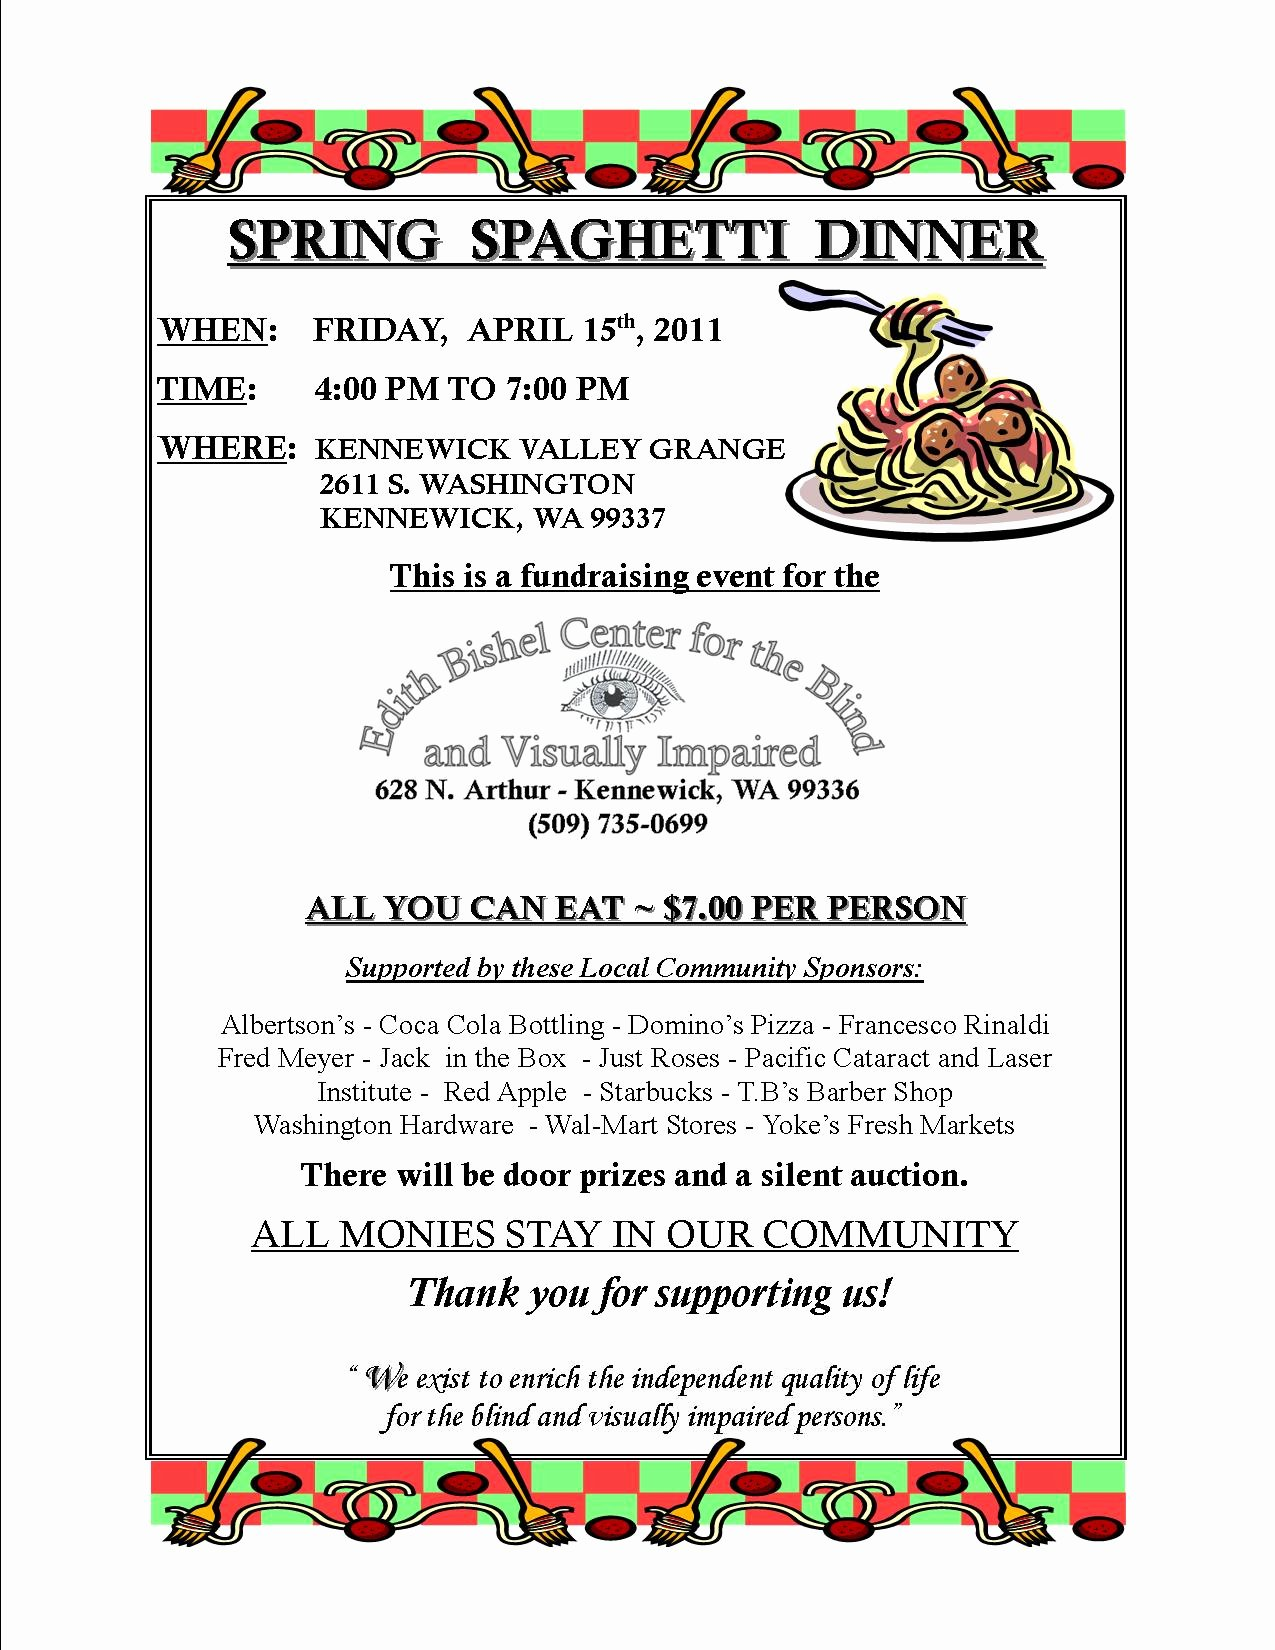 Spaghetti Dinner Flyer Template Yourweek 198bddeca25e